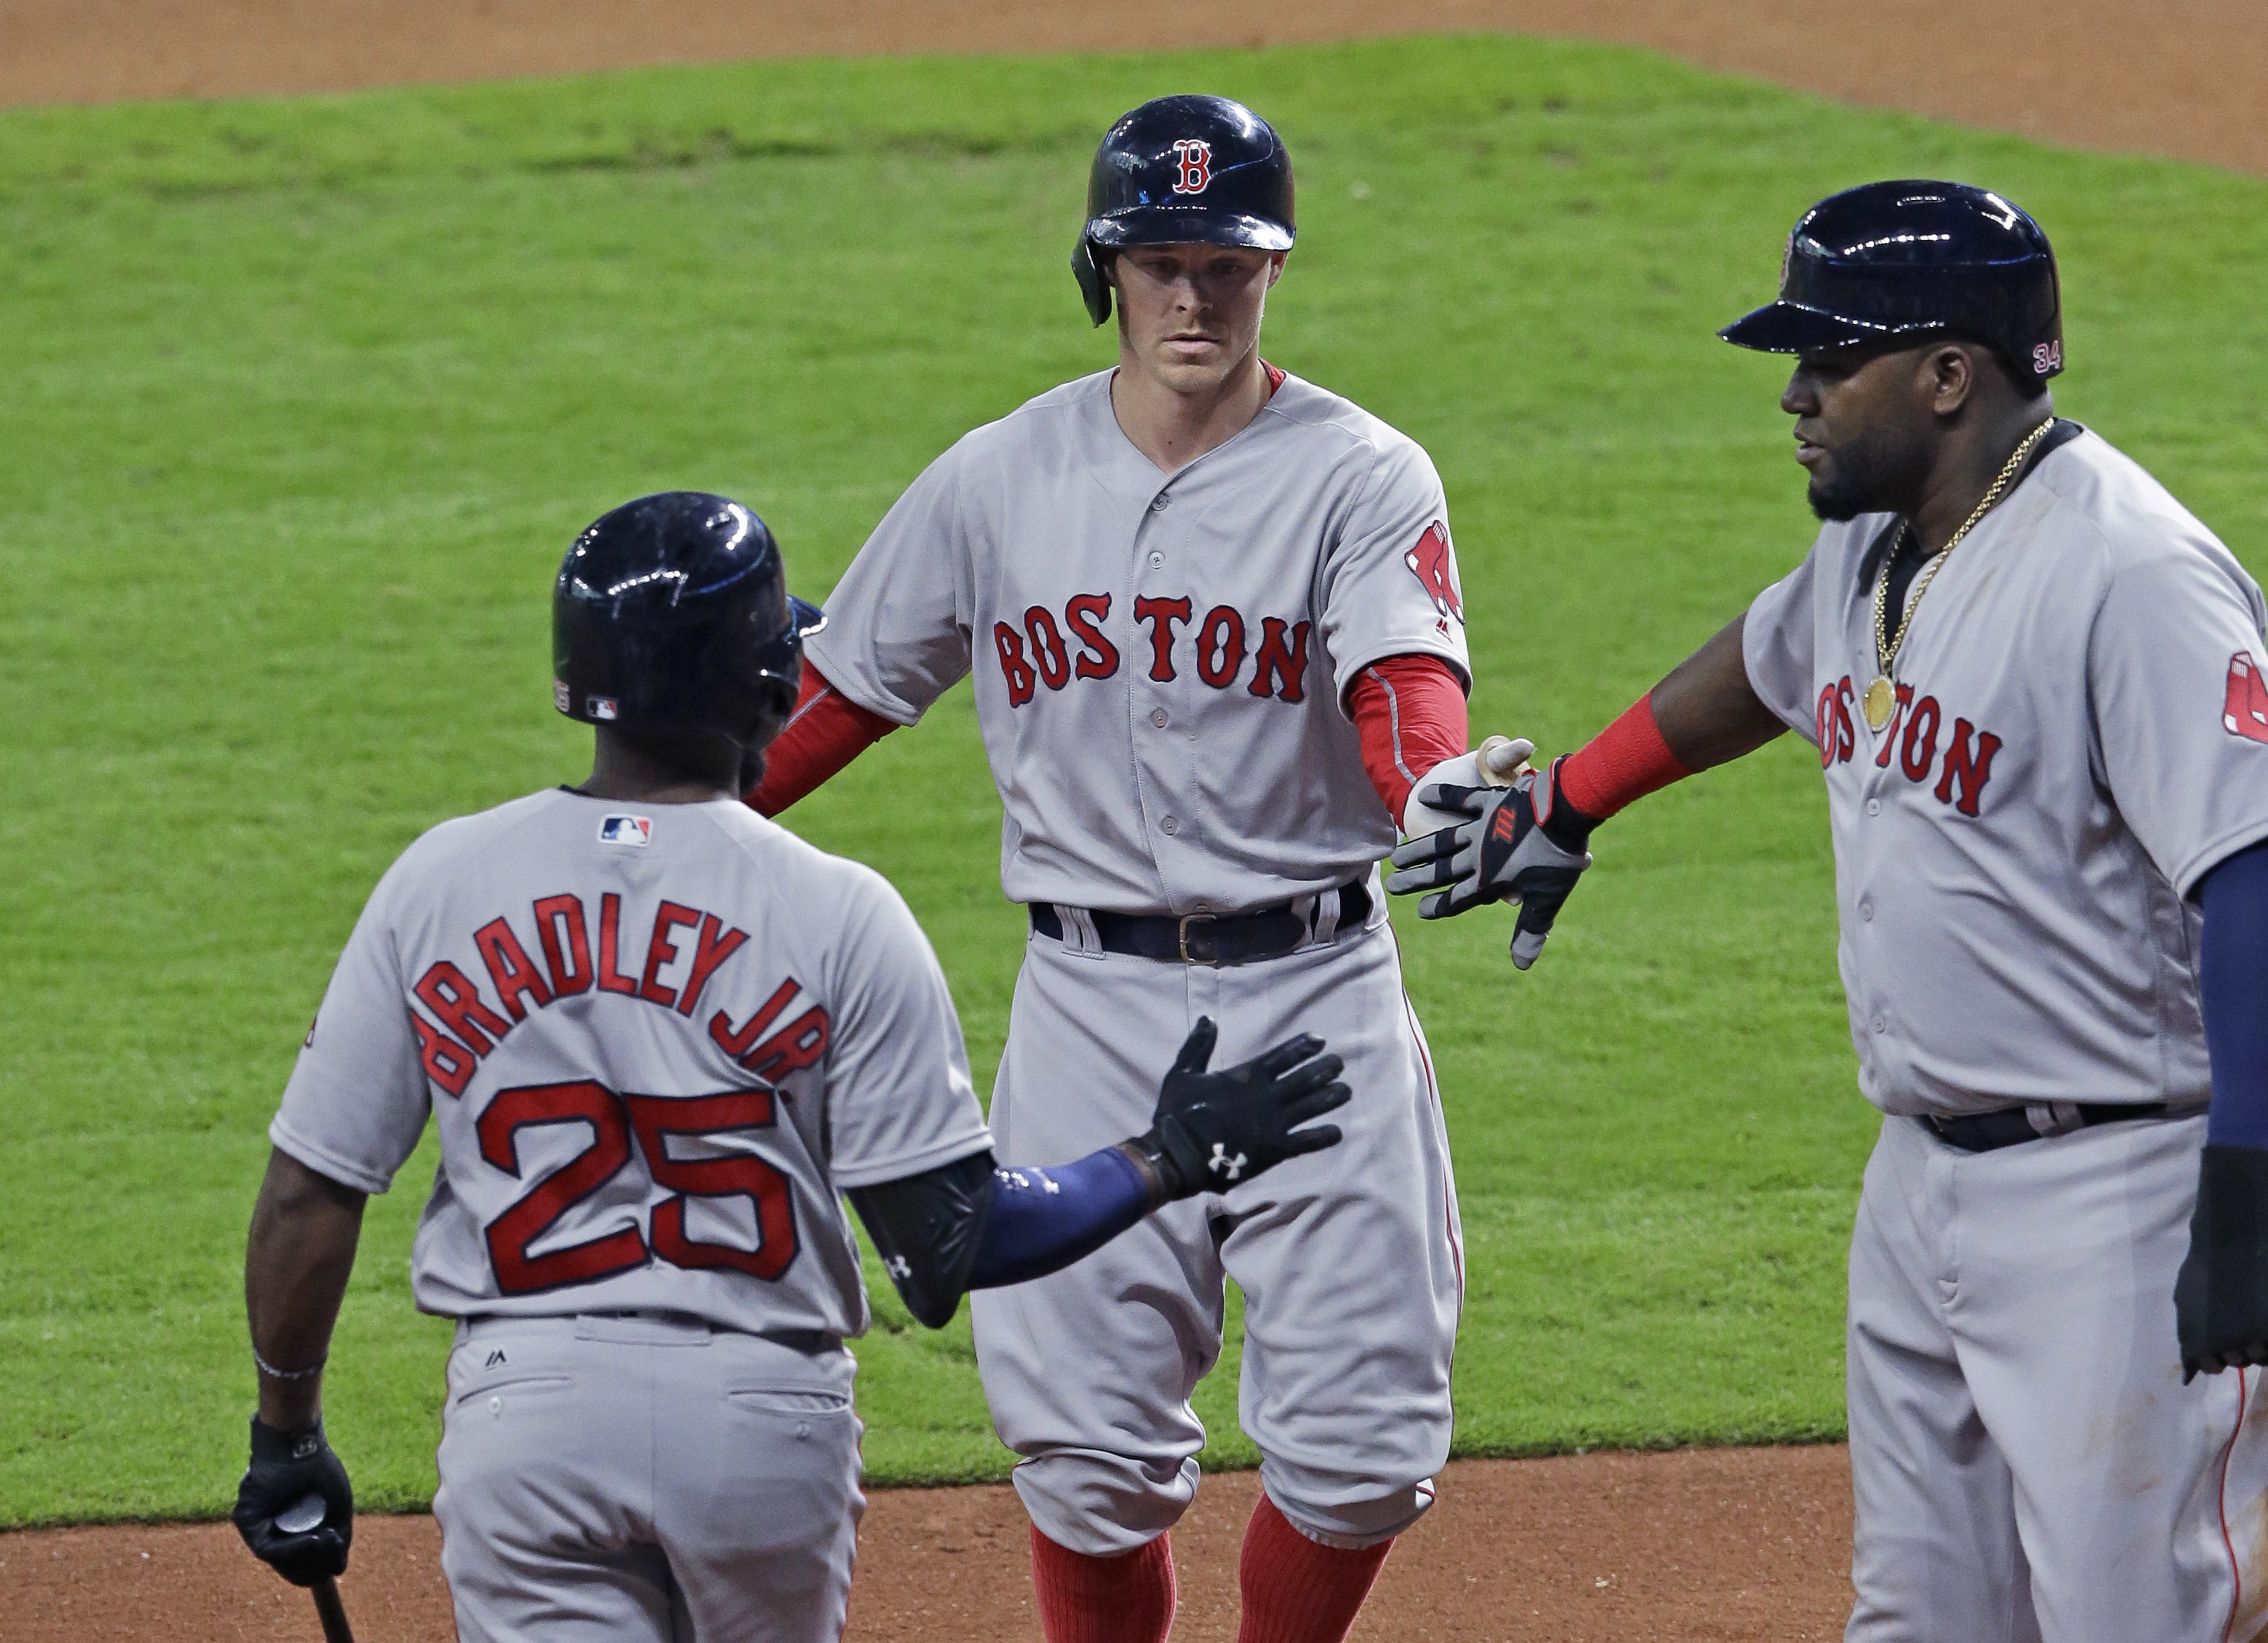 Boston Red Sox Jackie Bradley Jr. (25) and David Ortiz, right, congratulate Brock Holt, center, on a sacrifice fly to bring in Ortiz with the bases loaded against the Houston Astros in the first inning of a baseball game, Sunday, April 24, 2016, in Housto